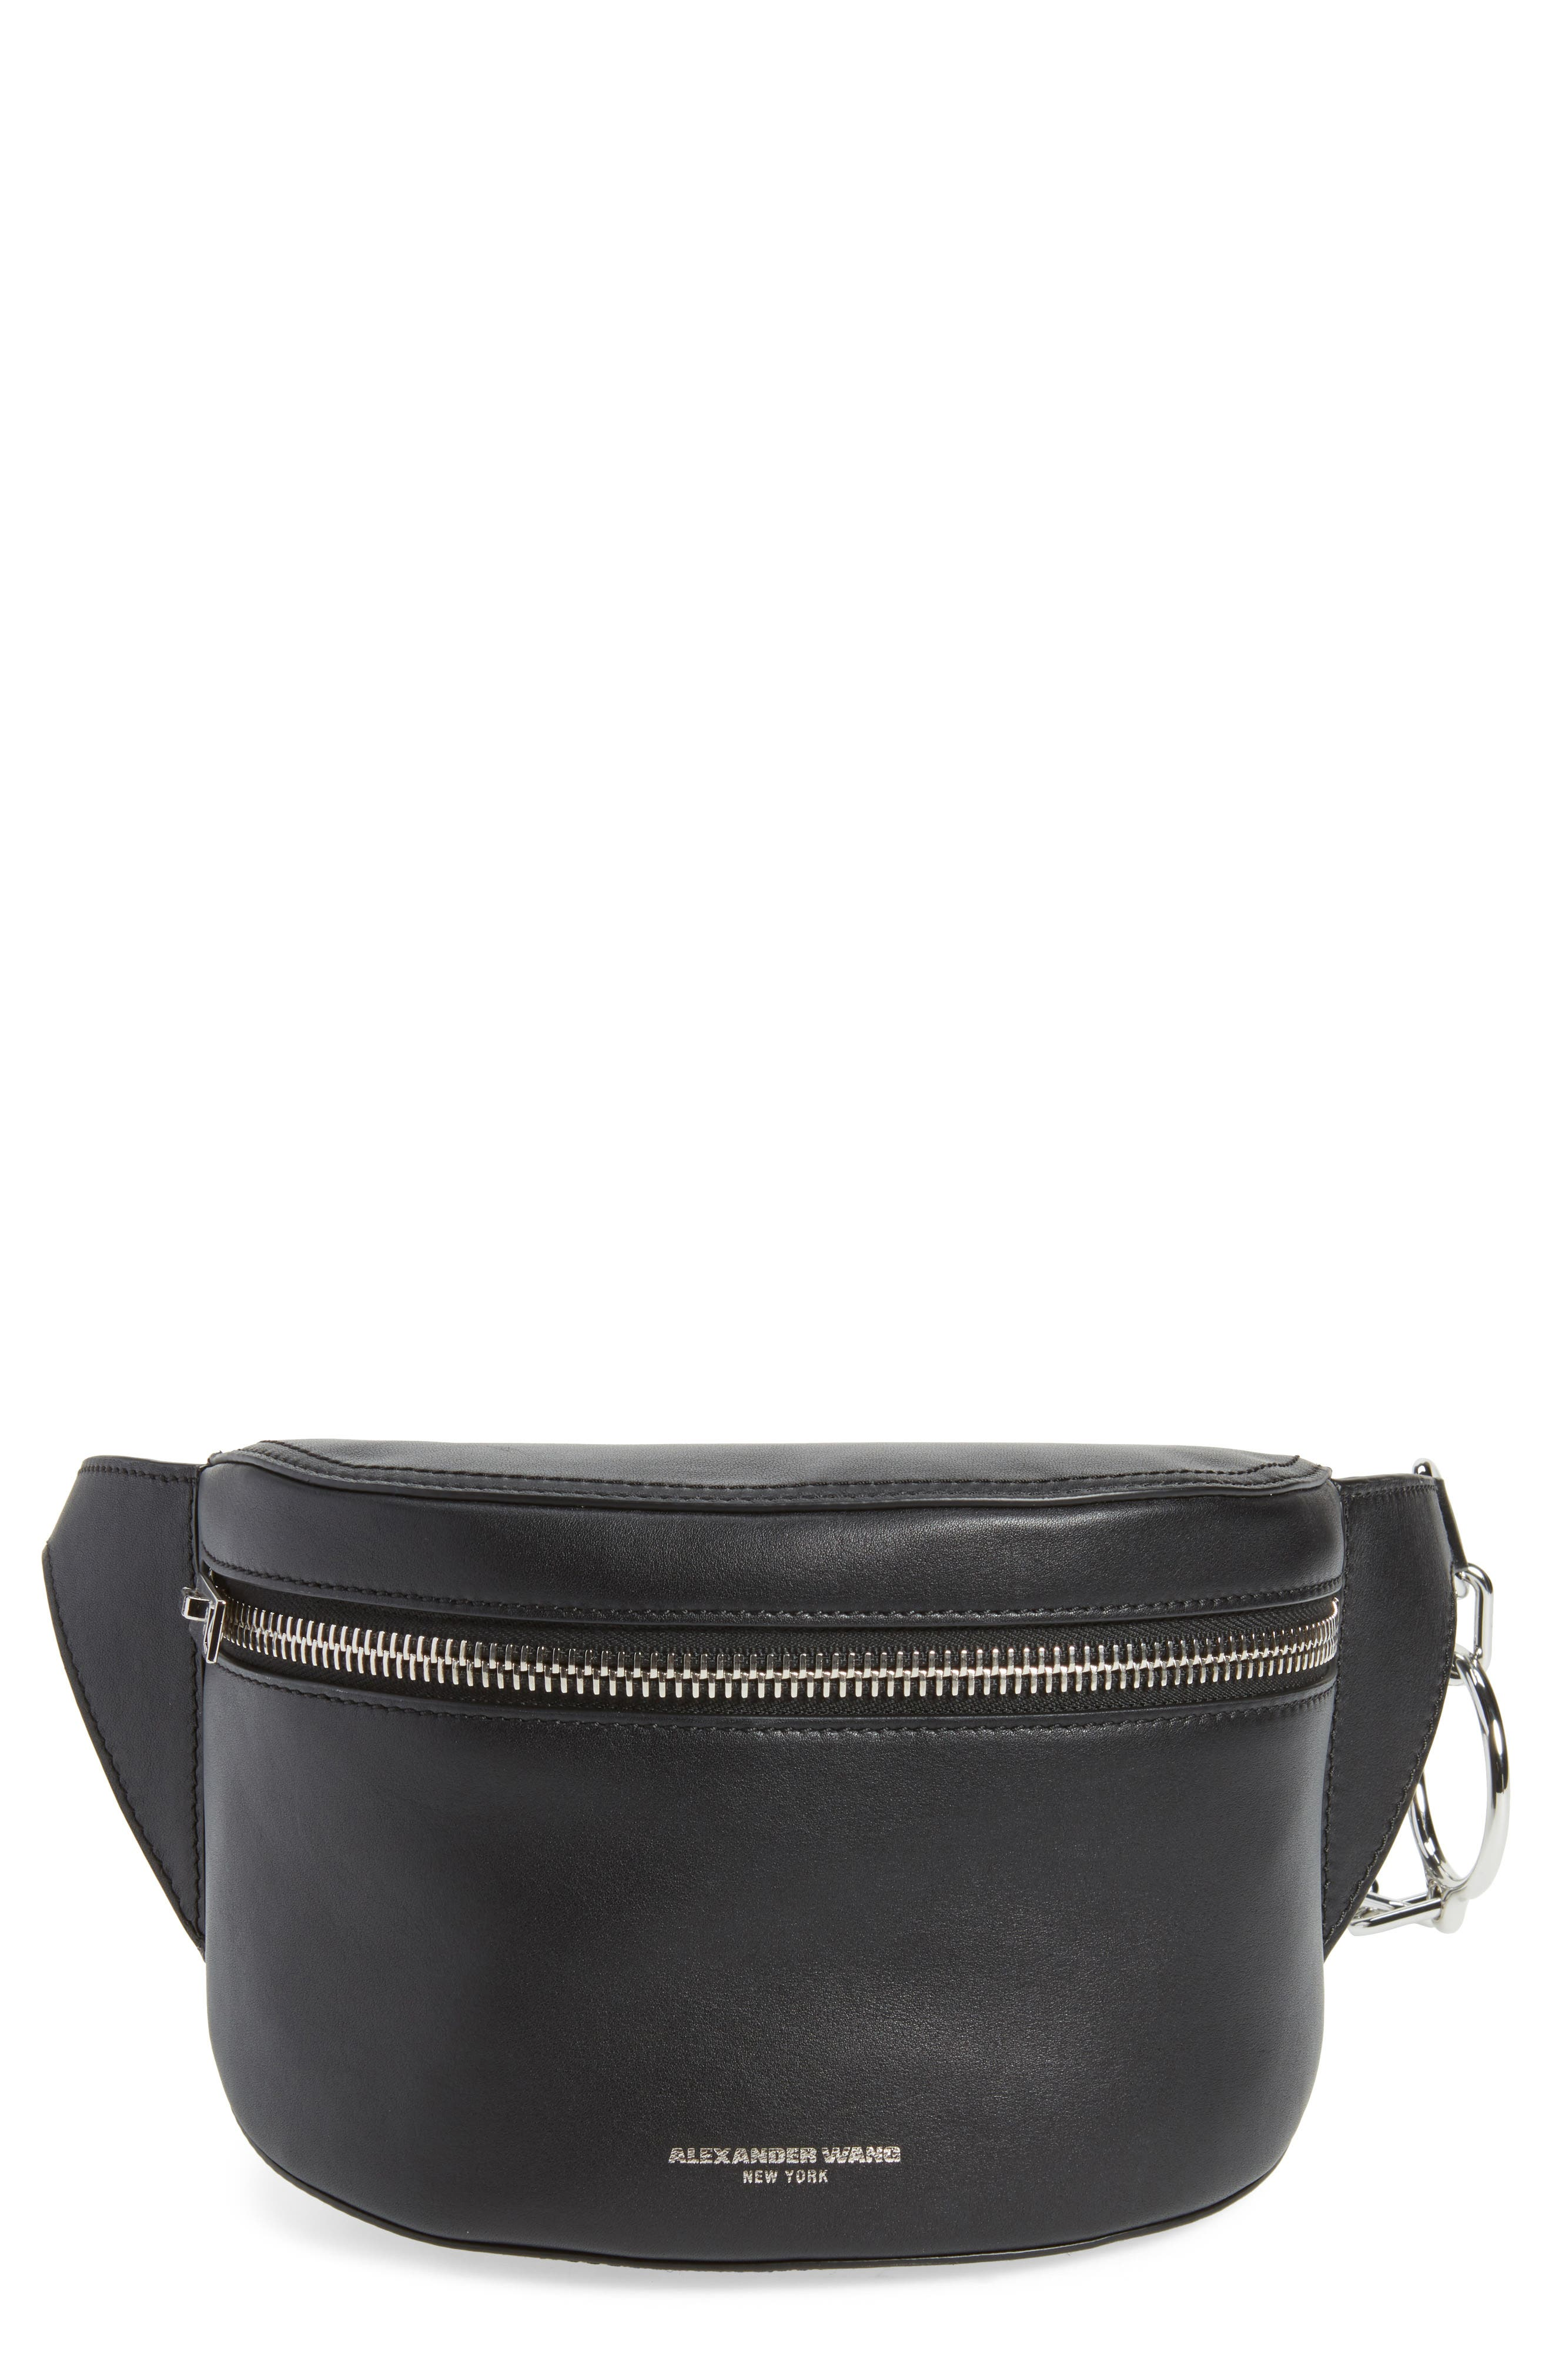 Leather Fanny Pack,                             Main thumbnail 1, color,                             001